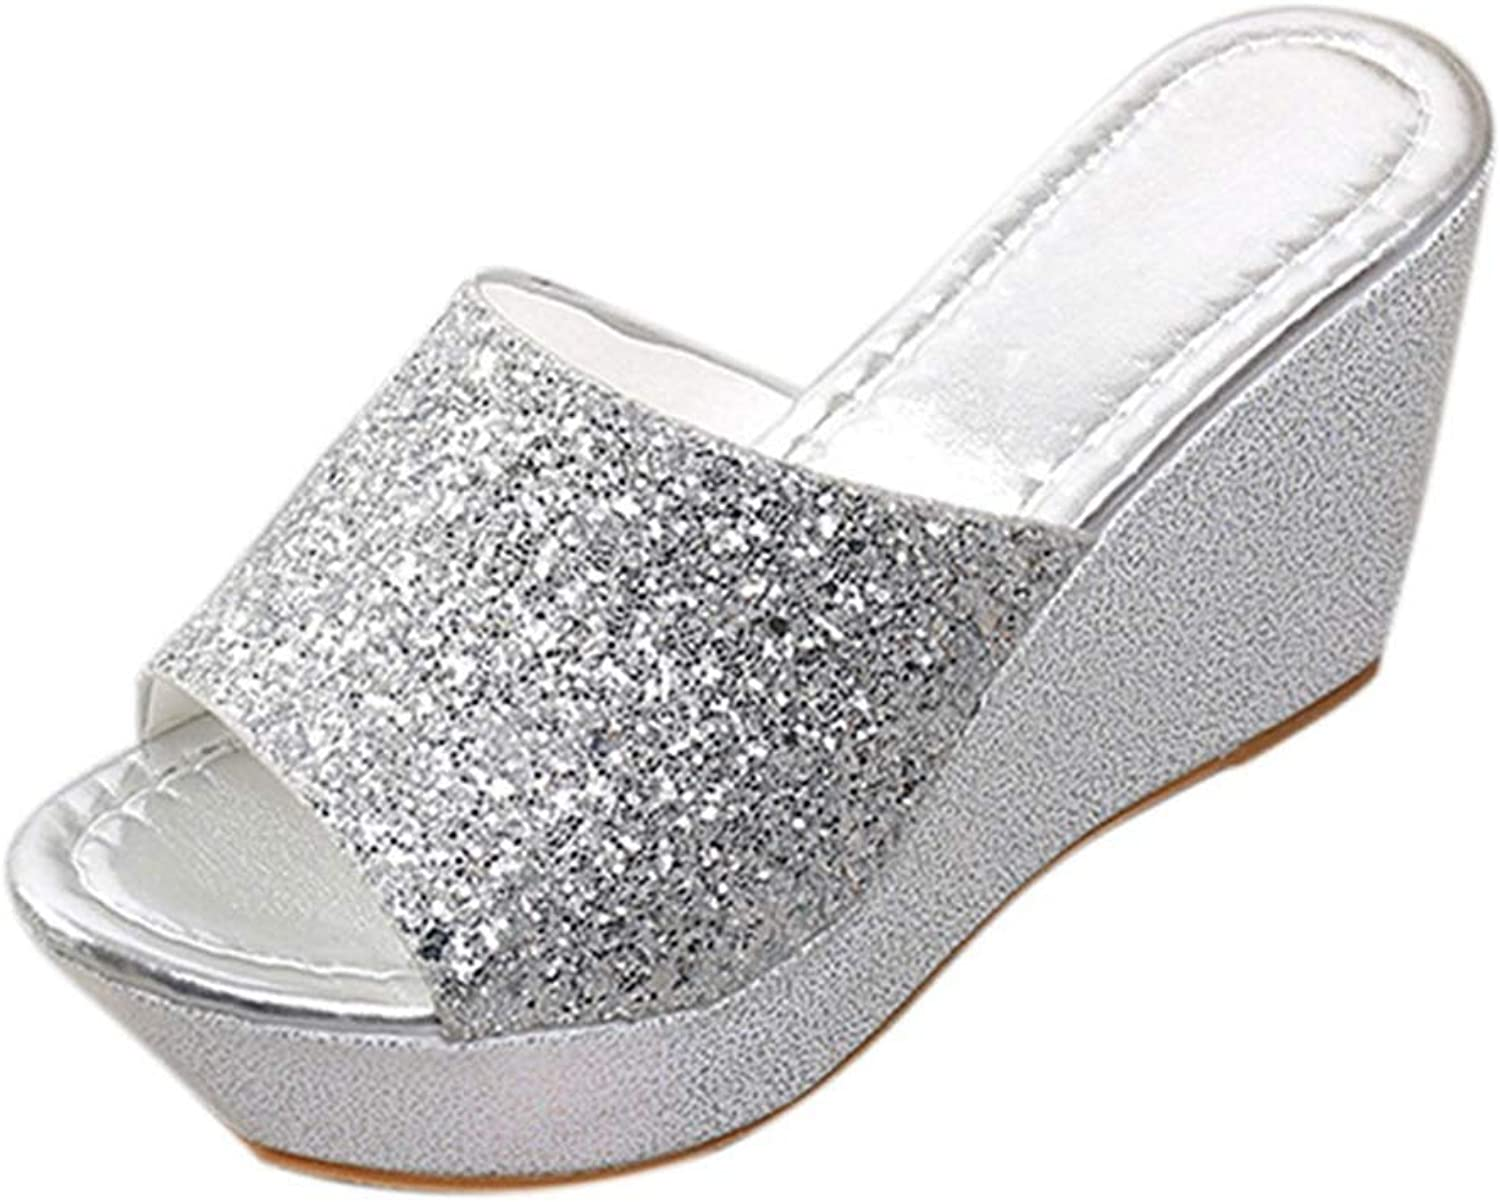 T-JULY Fashion Women Round Toe Slides Wedge Sandals Sexy Bling Wedges High Heel Slippers